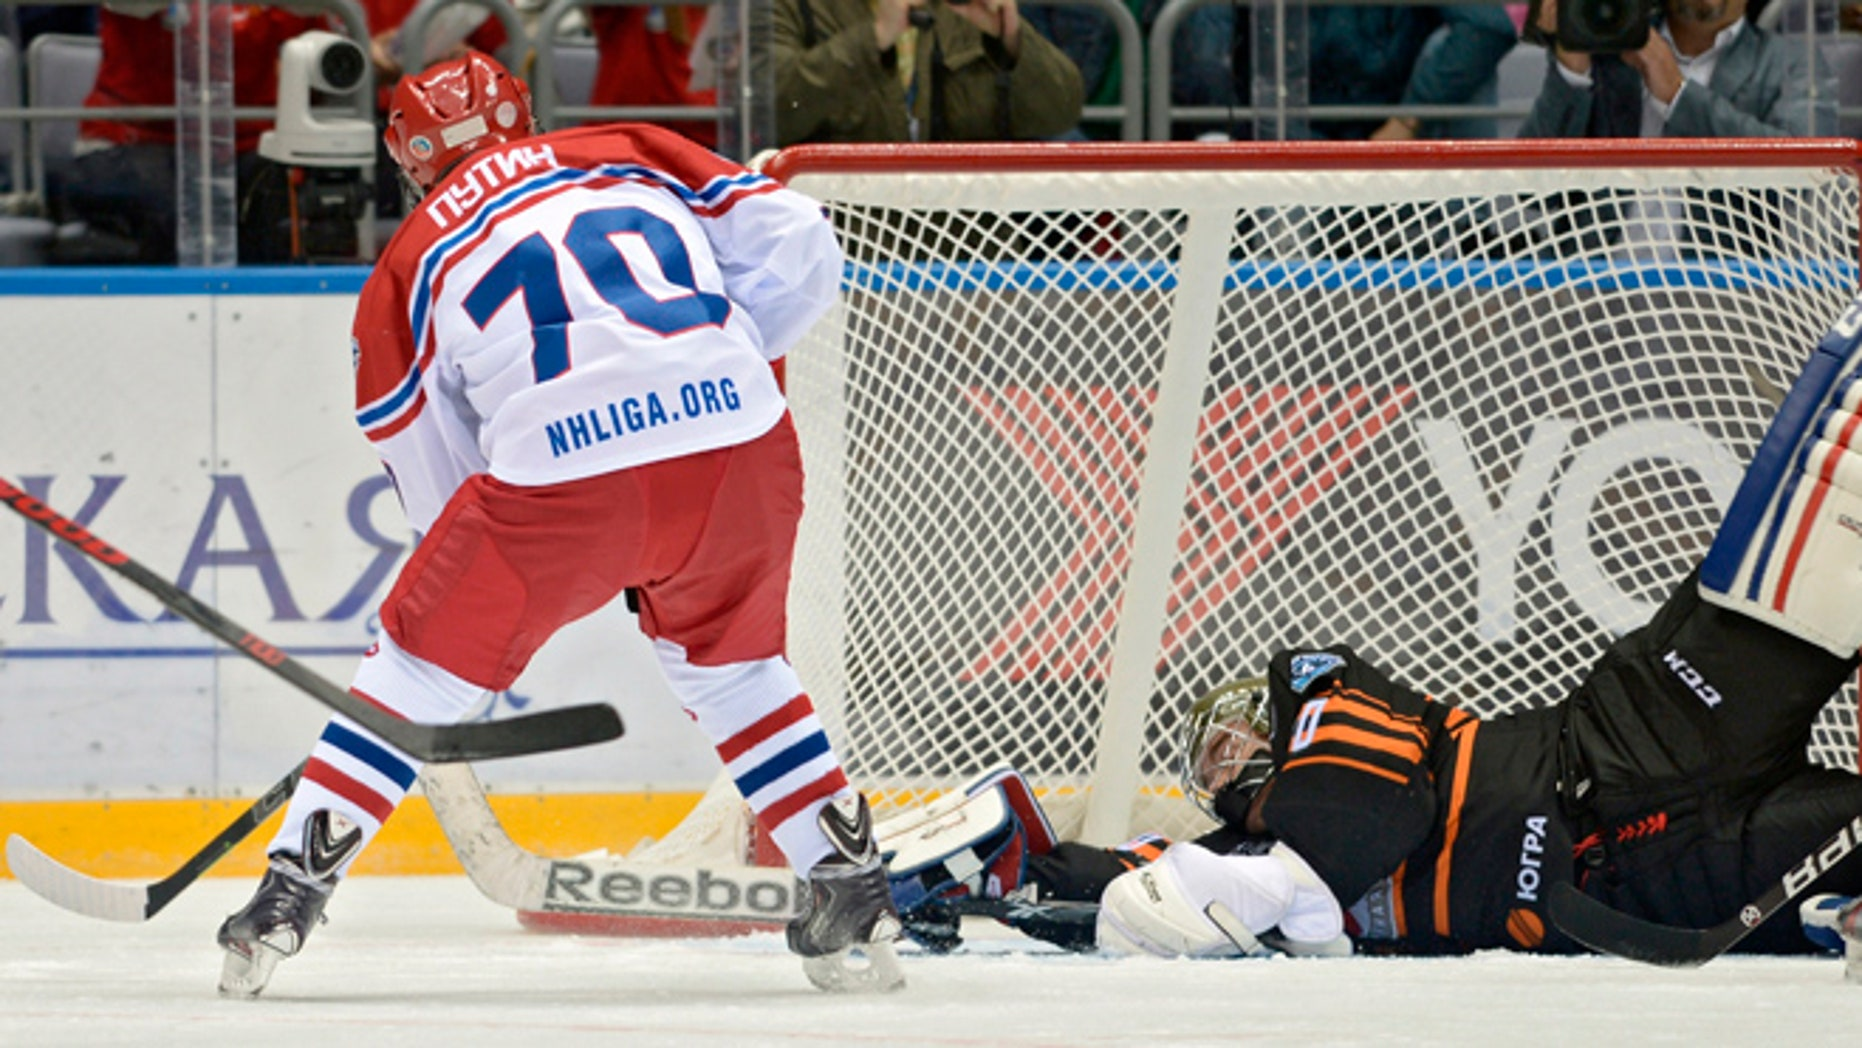 May 16, 2015: Russian President Vladimir Putin, back to a camera, scores during an exhibition hockey game at the Night Hockey League tournament in the Black Sea resort of Sochi, Russia. President Vladimir Putin has played in an exhibition hockey game and scored one goal after another on assists from retired NHL players.